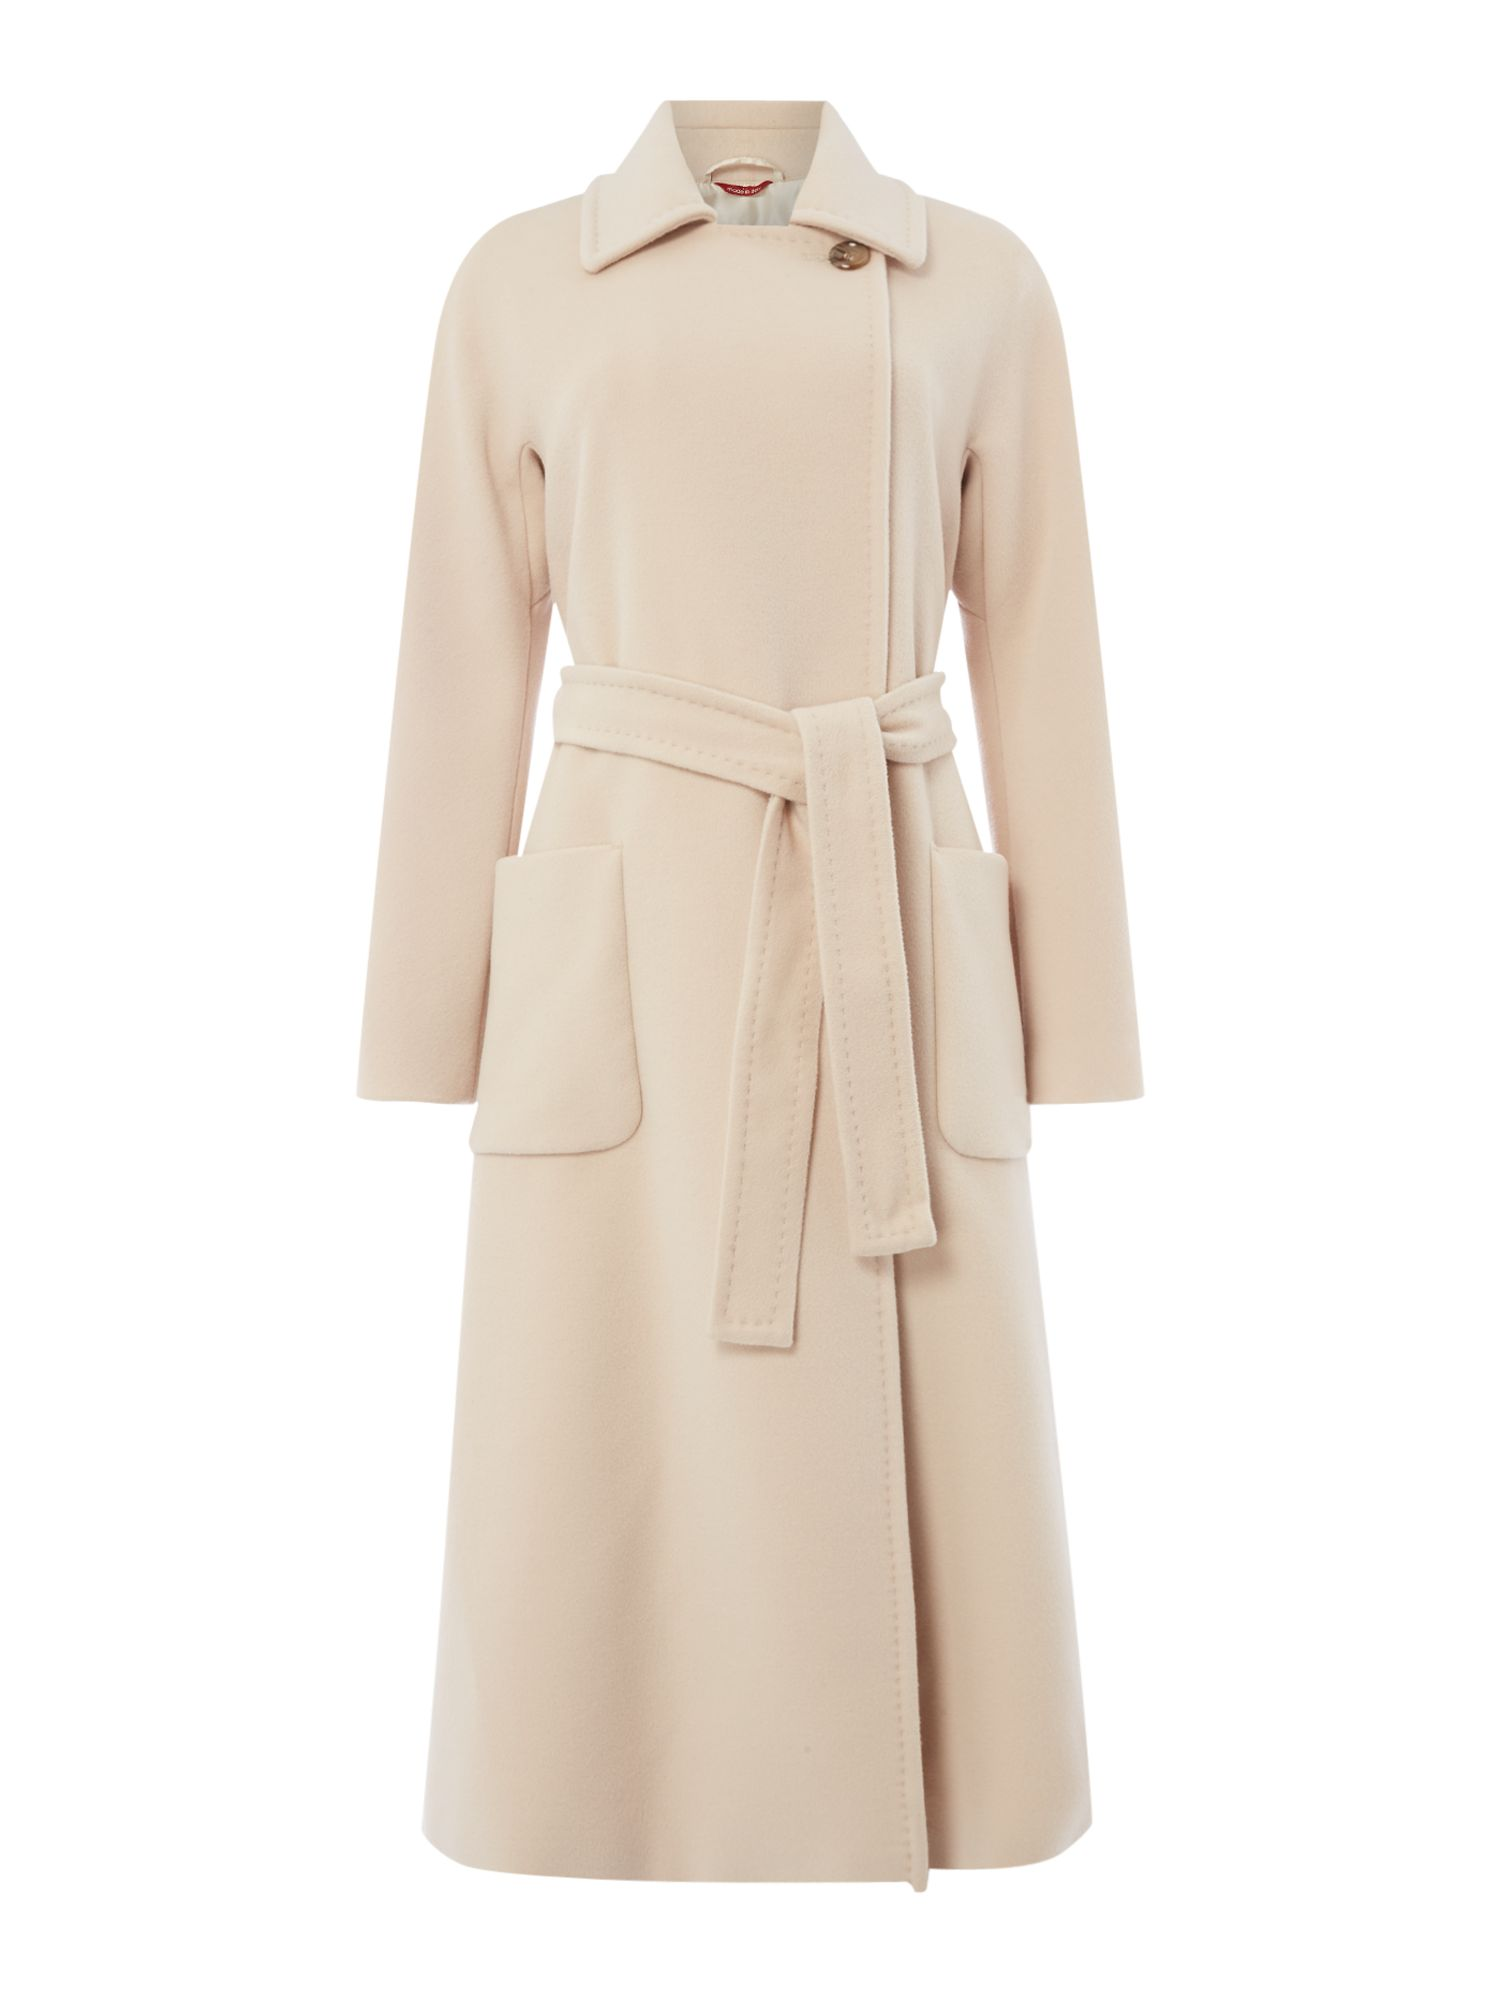 Max Mara Studio Gardena long wool coat with belt, White